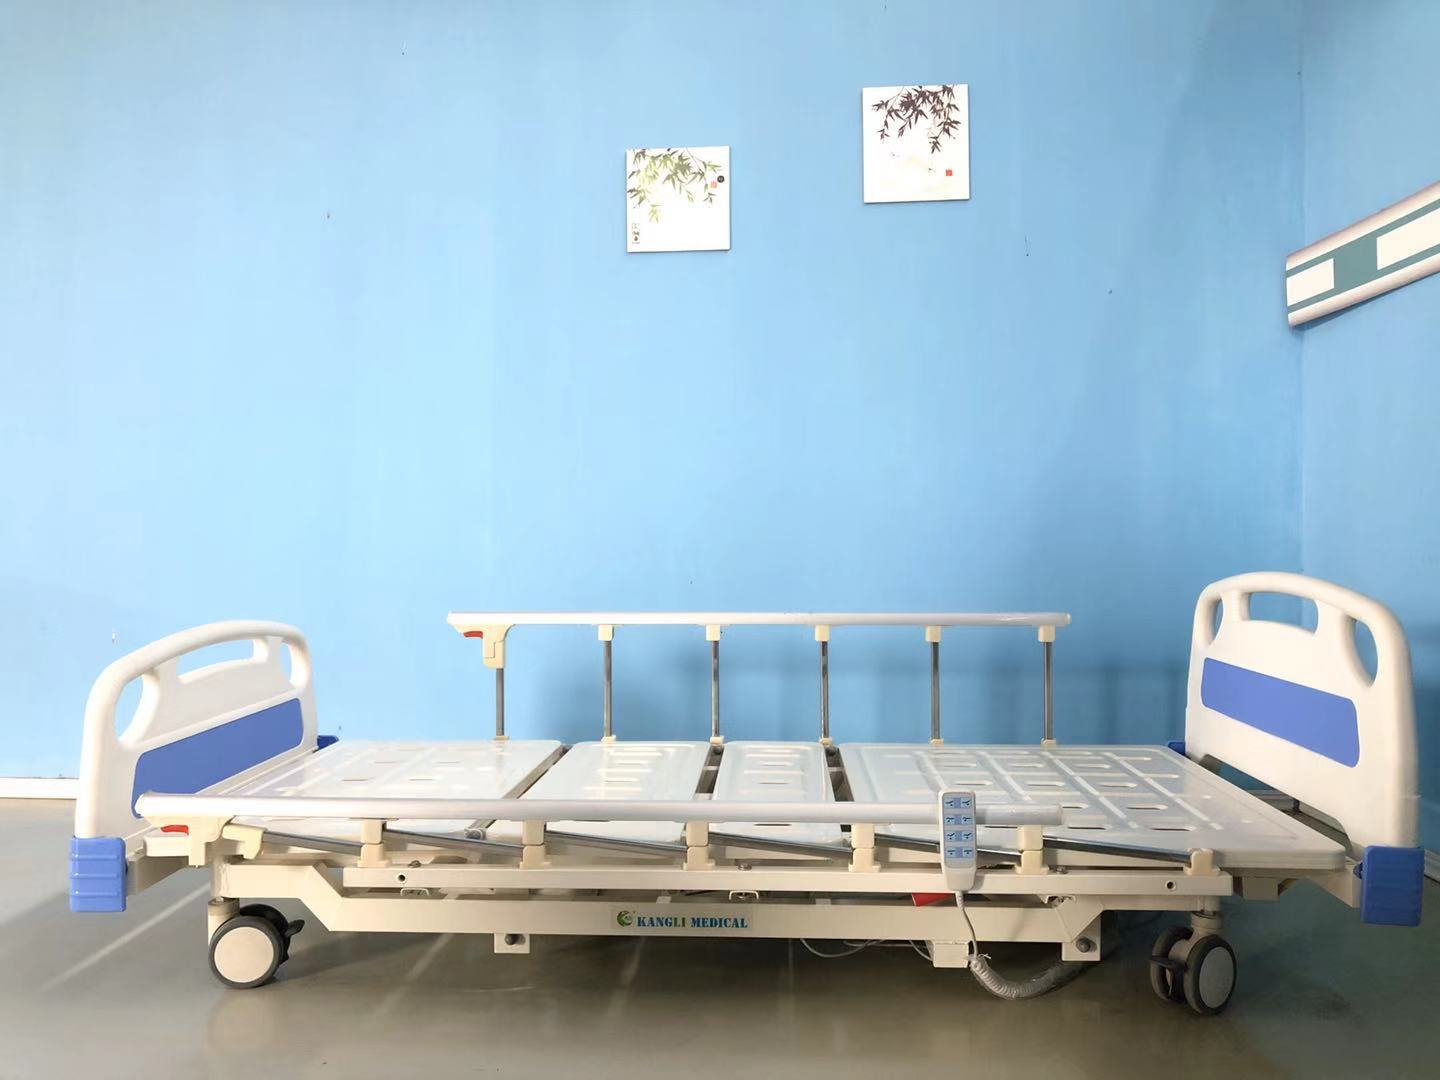 ultra low hospital bed